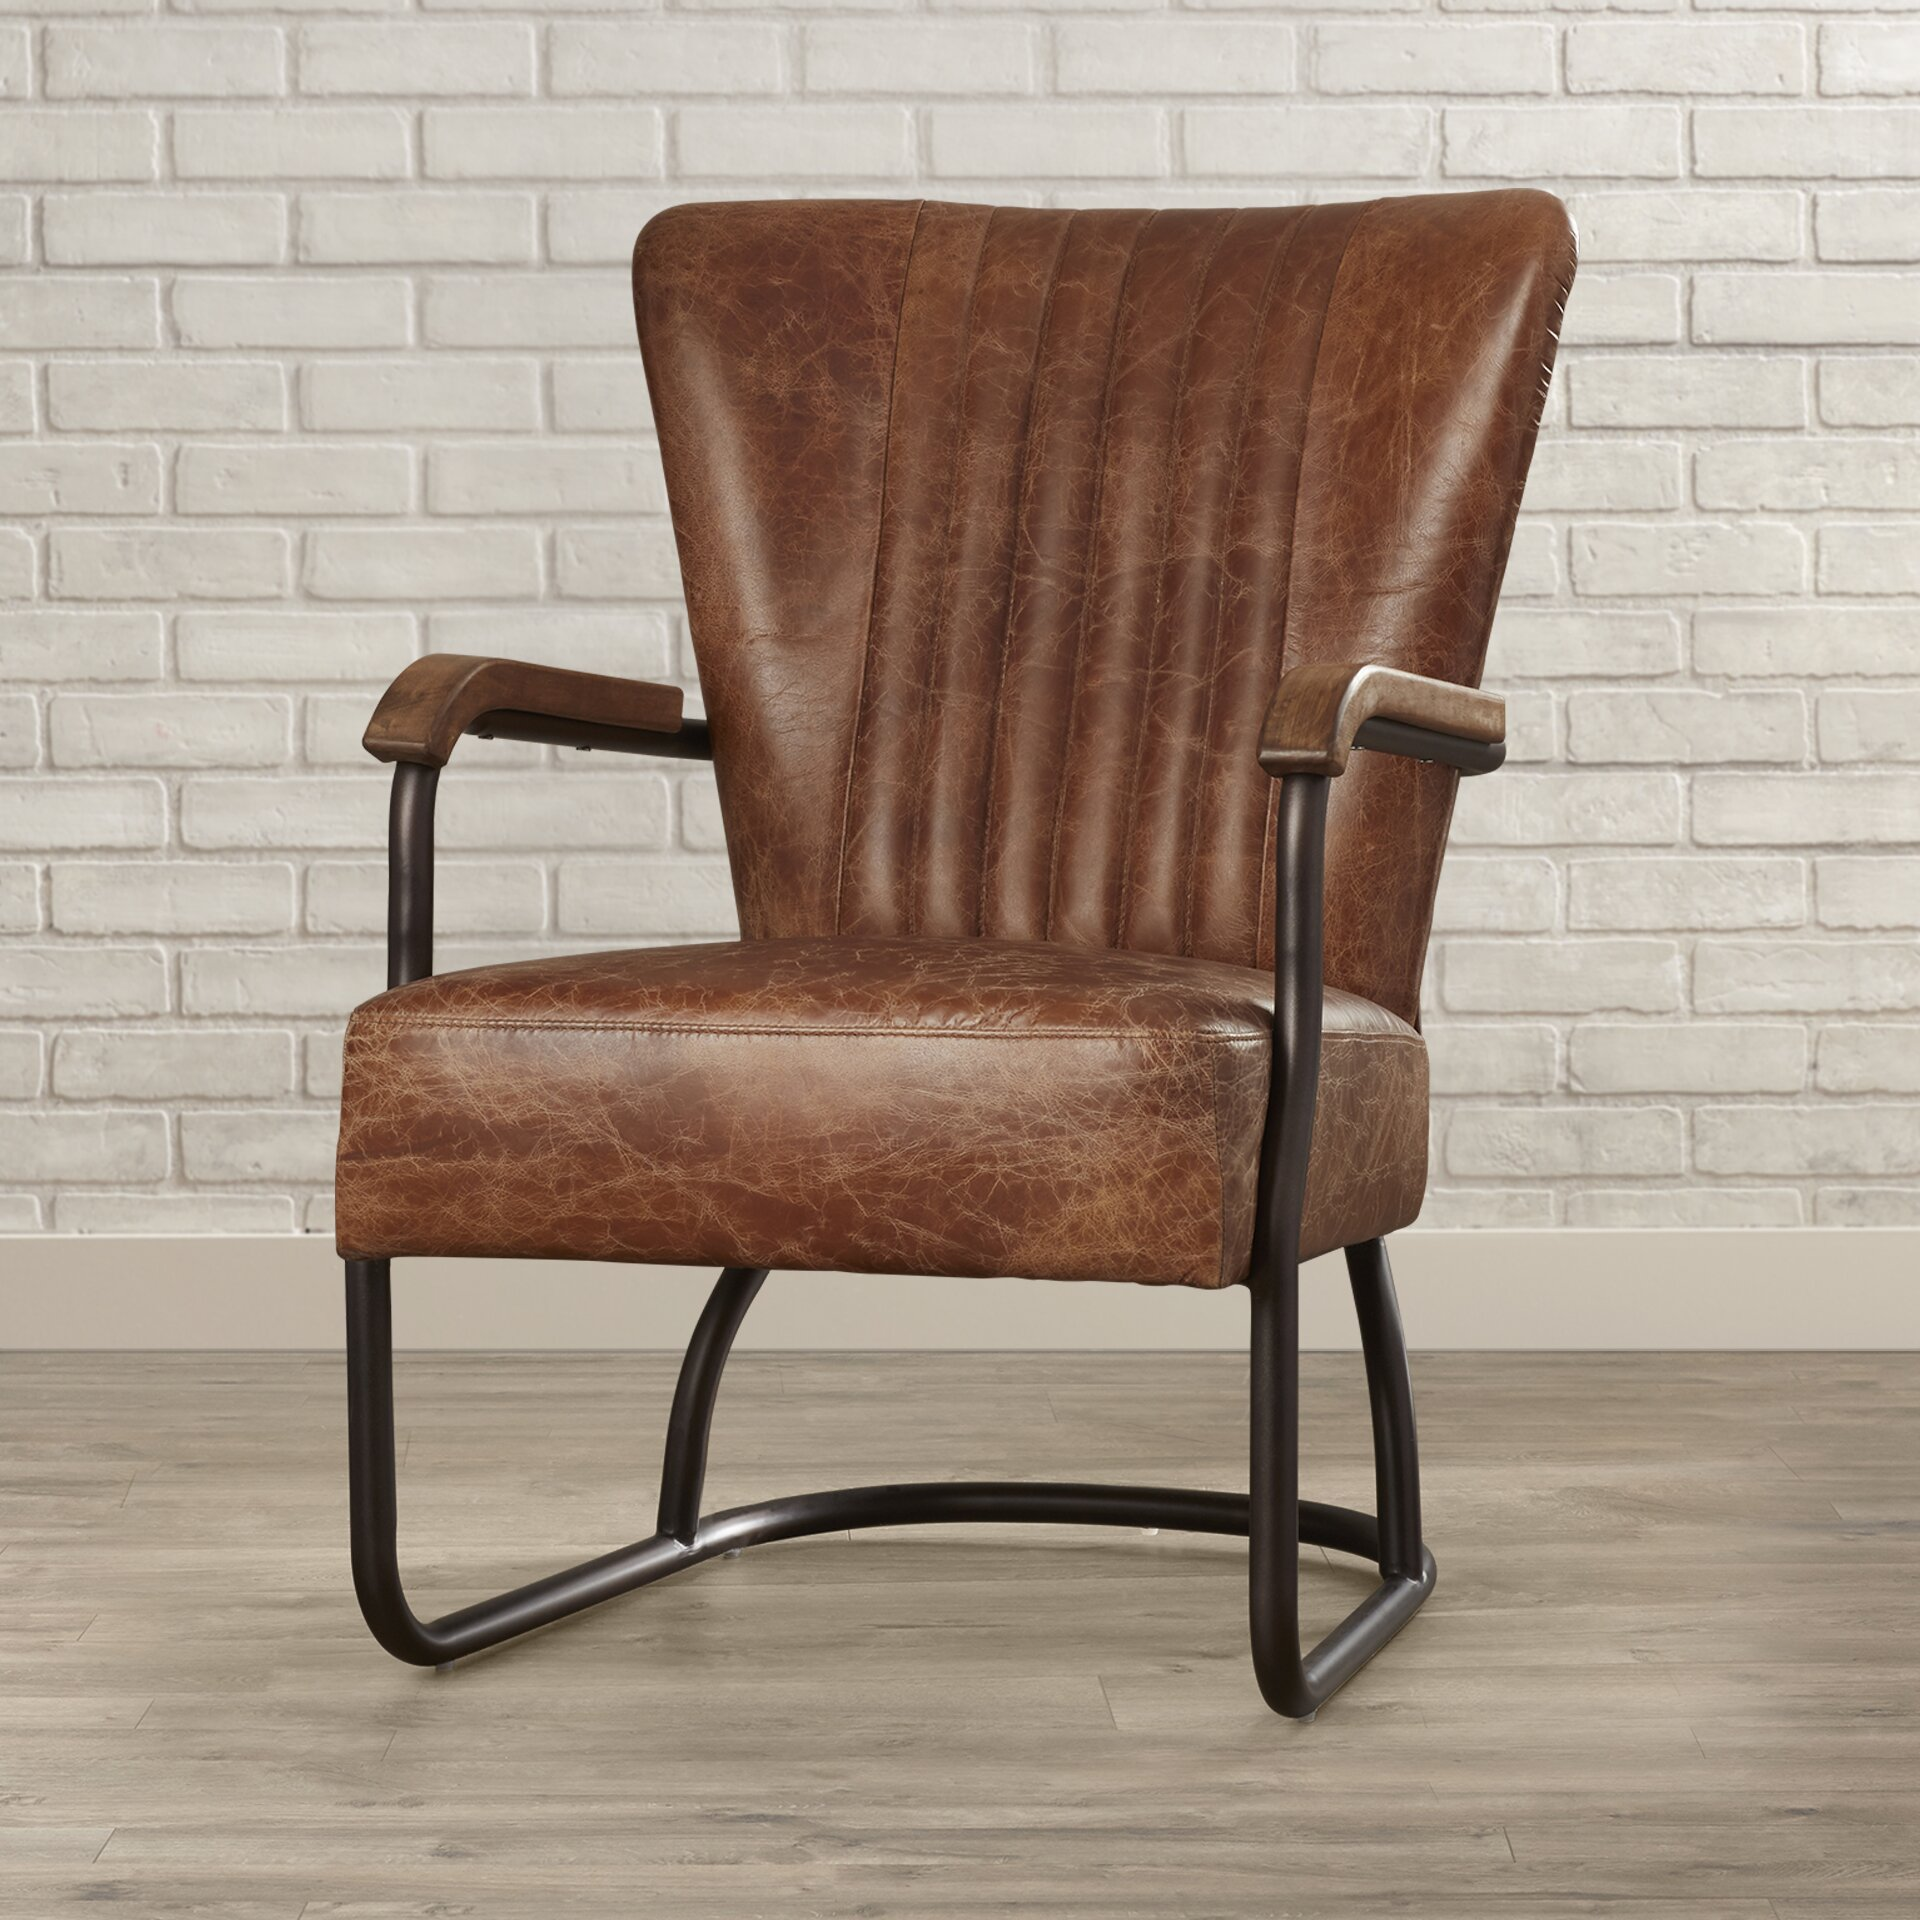 trent austin design cactus lane top grain leather arm chair reviews. Black Bedroom Furniture Sets. Home Design Ideas